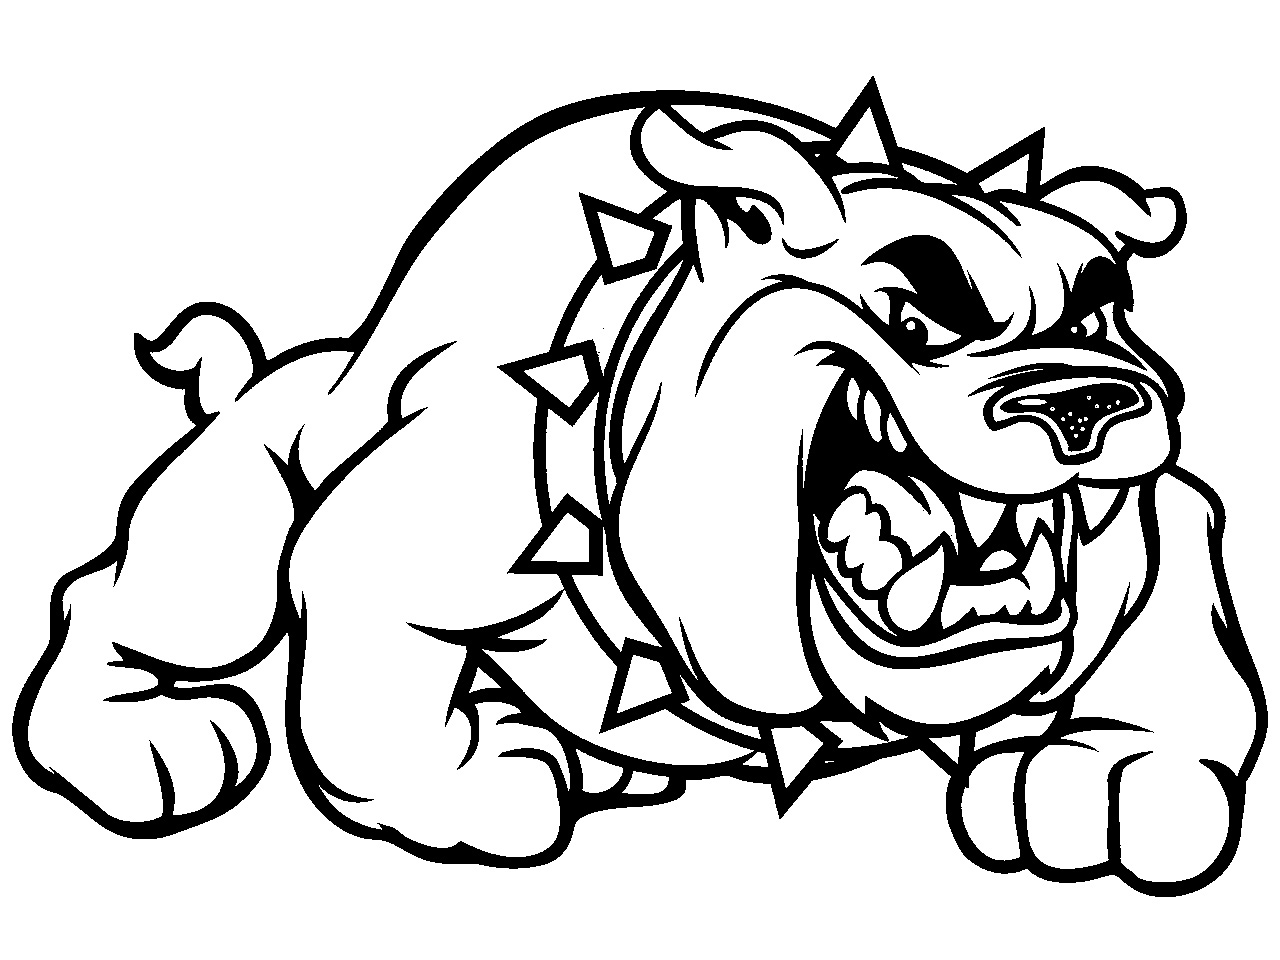 Bulldog Puppy Drawing at GetDrawings.com | Free for personal use ...